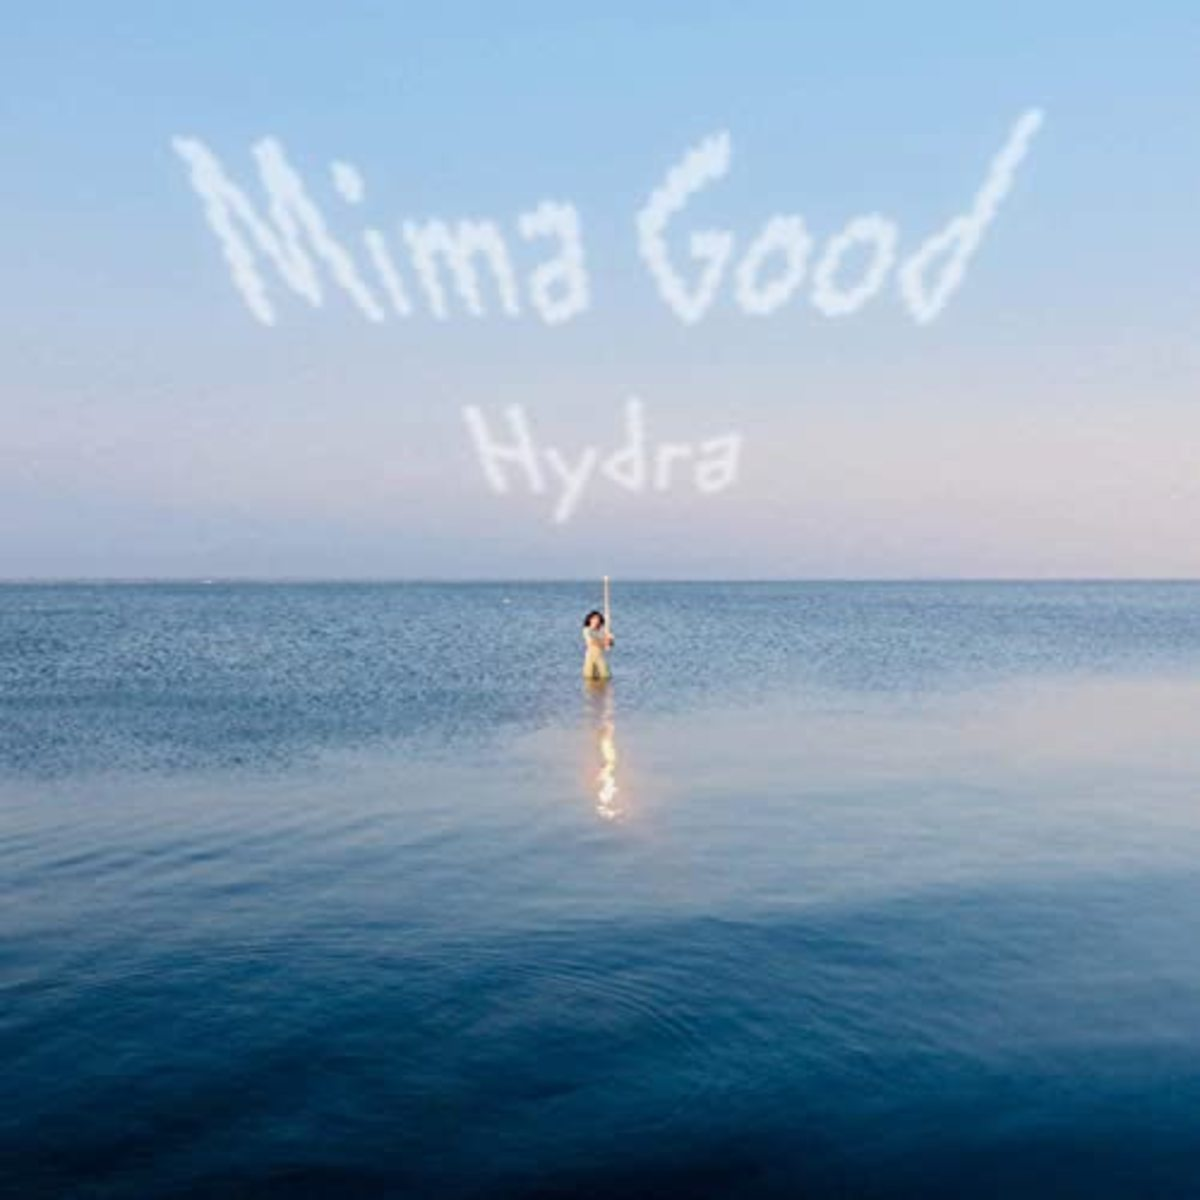 Finding the Good in 2020 in: An interview with Mima Good